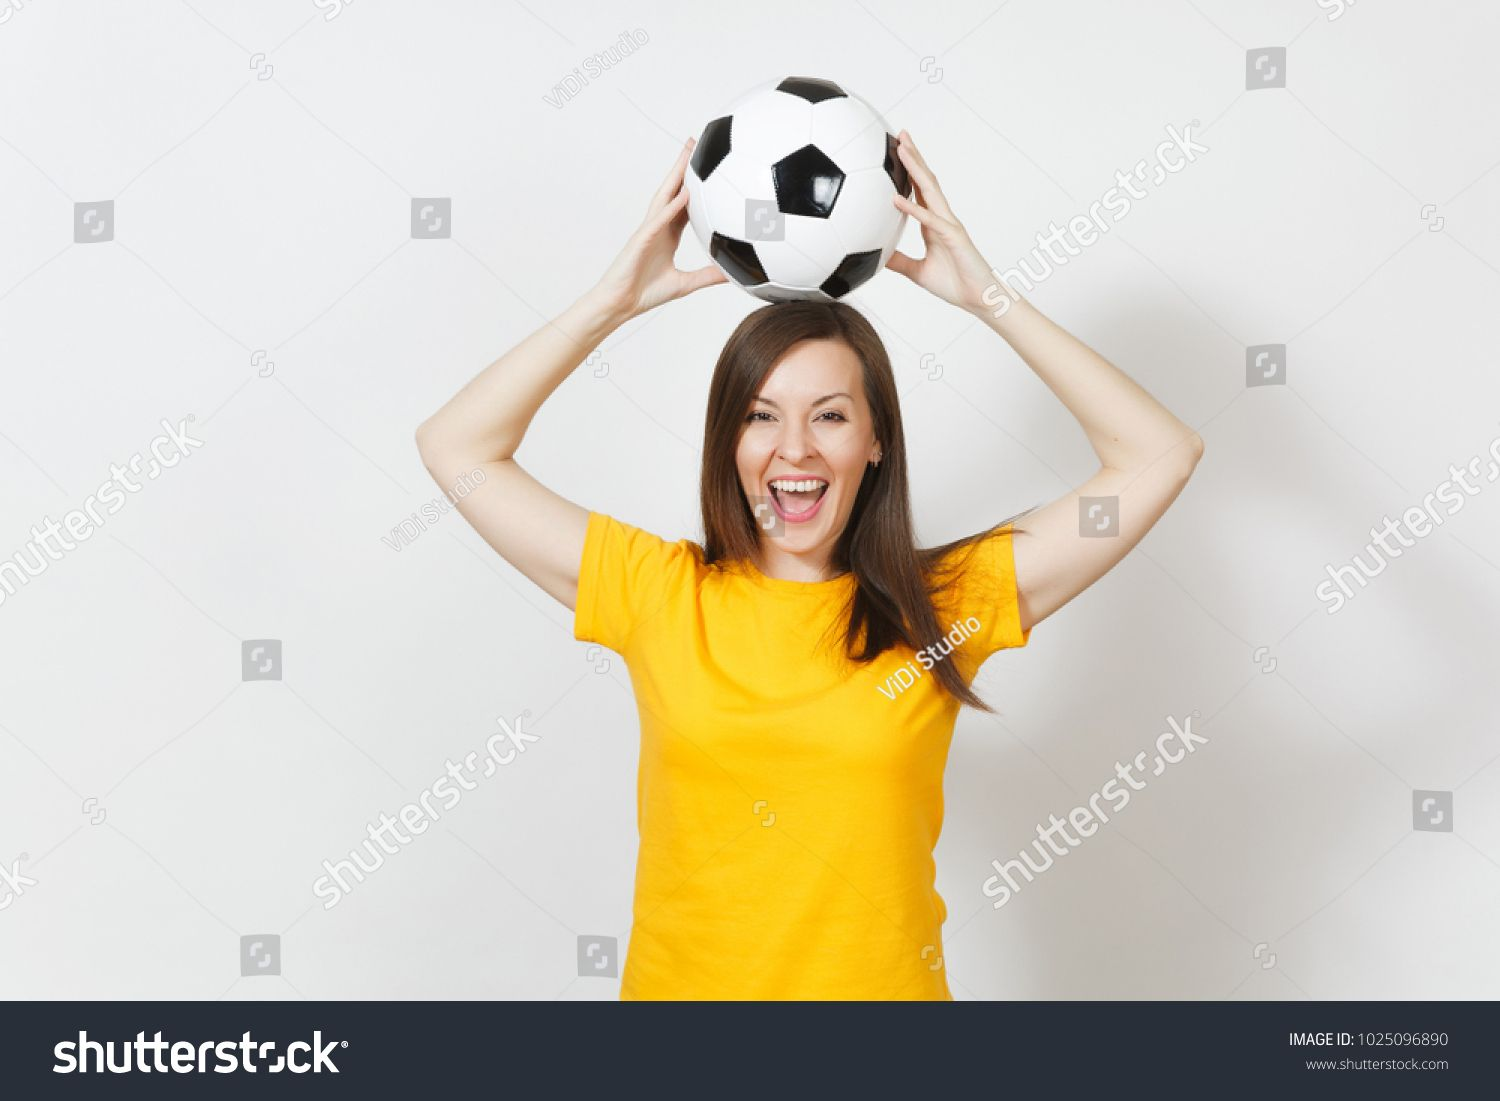 Beautiful European Young Cheerful Woman Football Fan Or Player In Yellow Uniform Holding Above Head Soccer Ball Isolated With Images Head Soccer Football Fans Soccer Ball